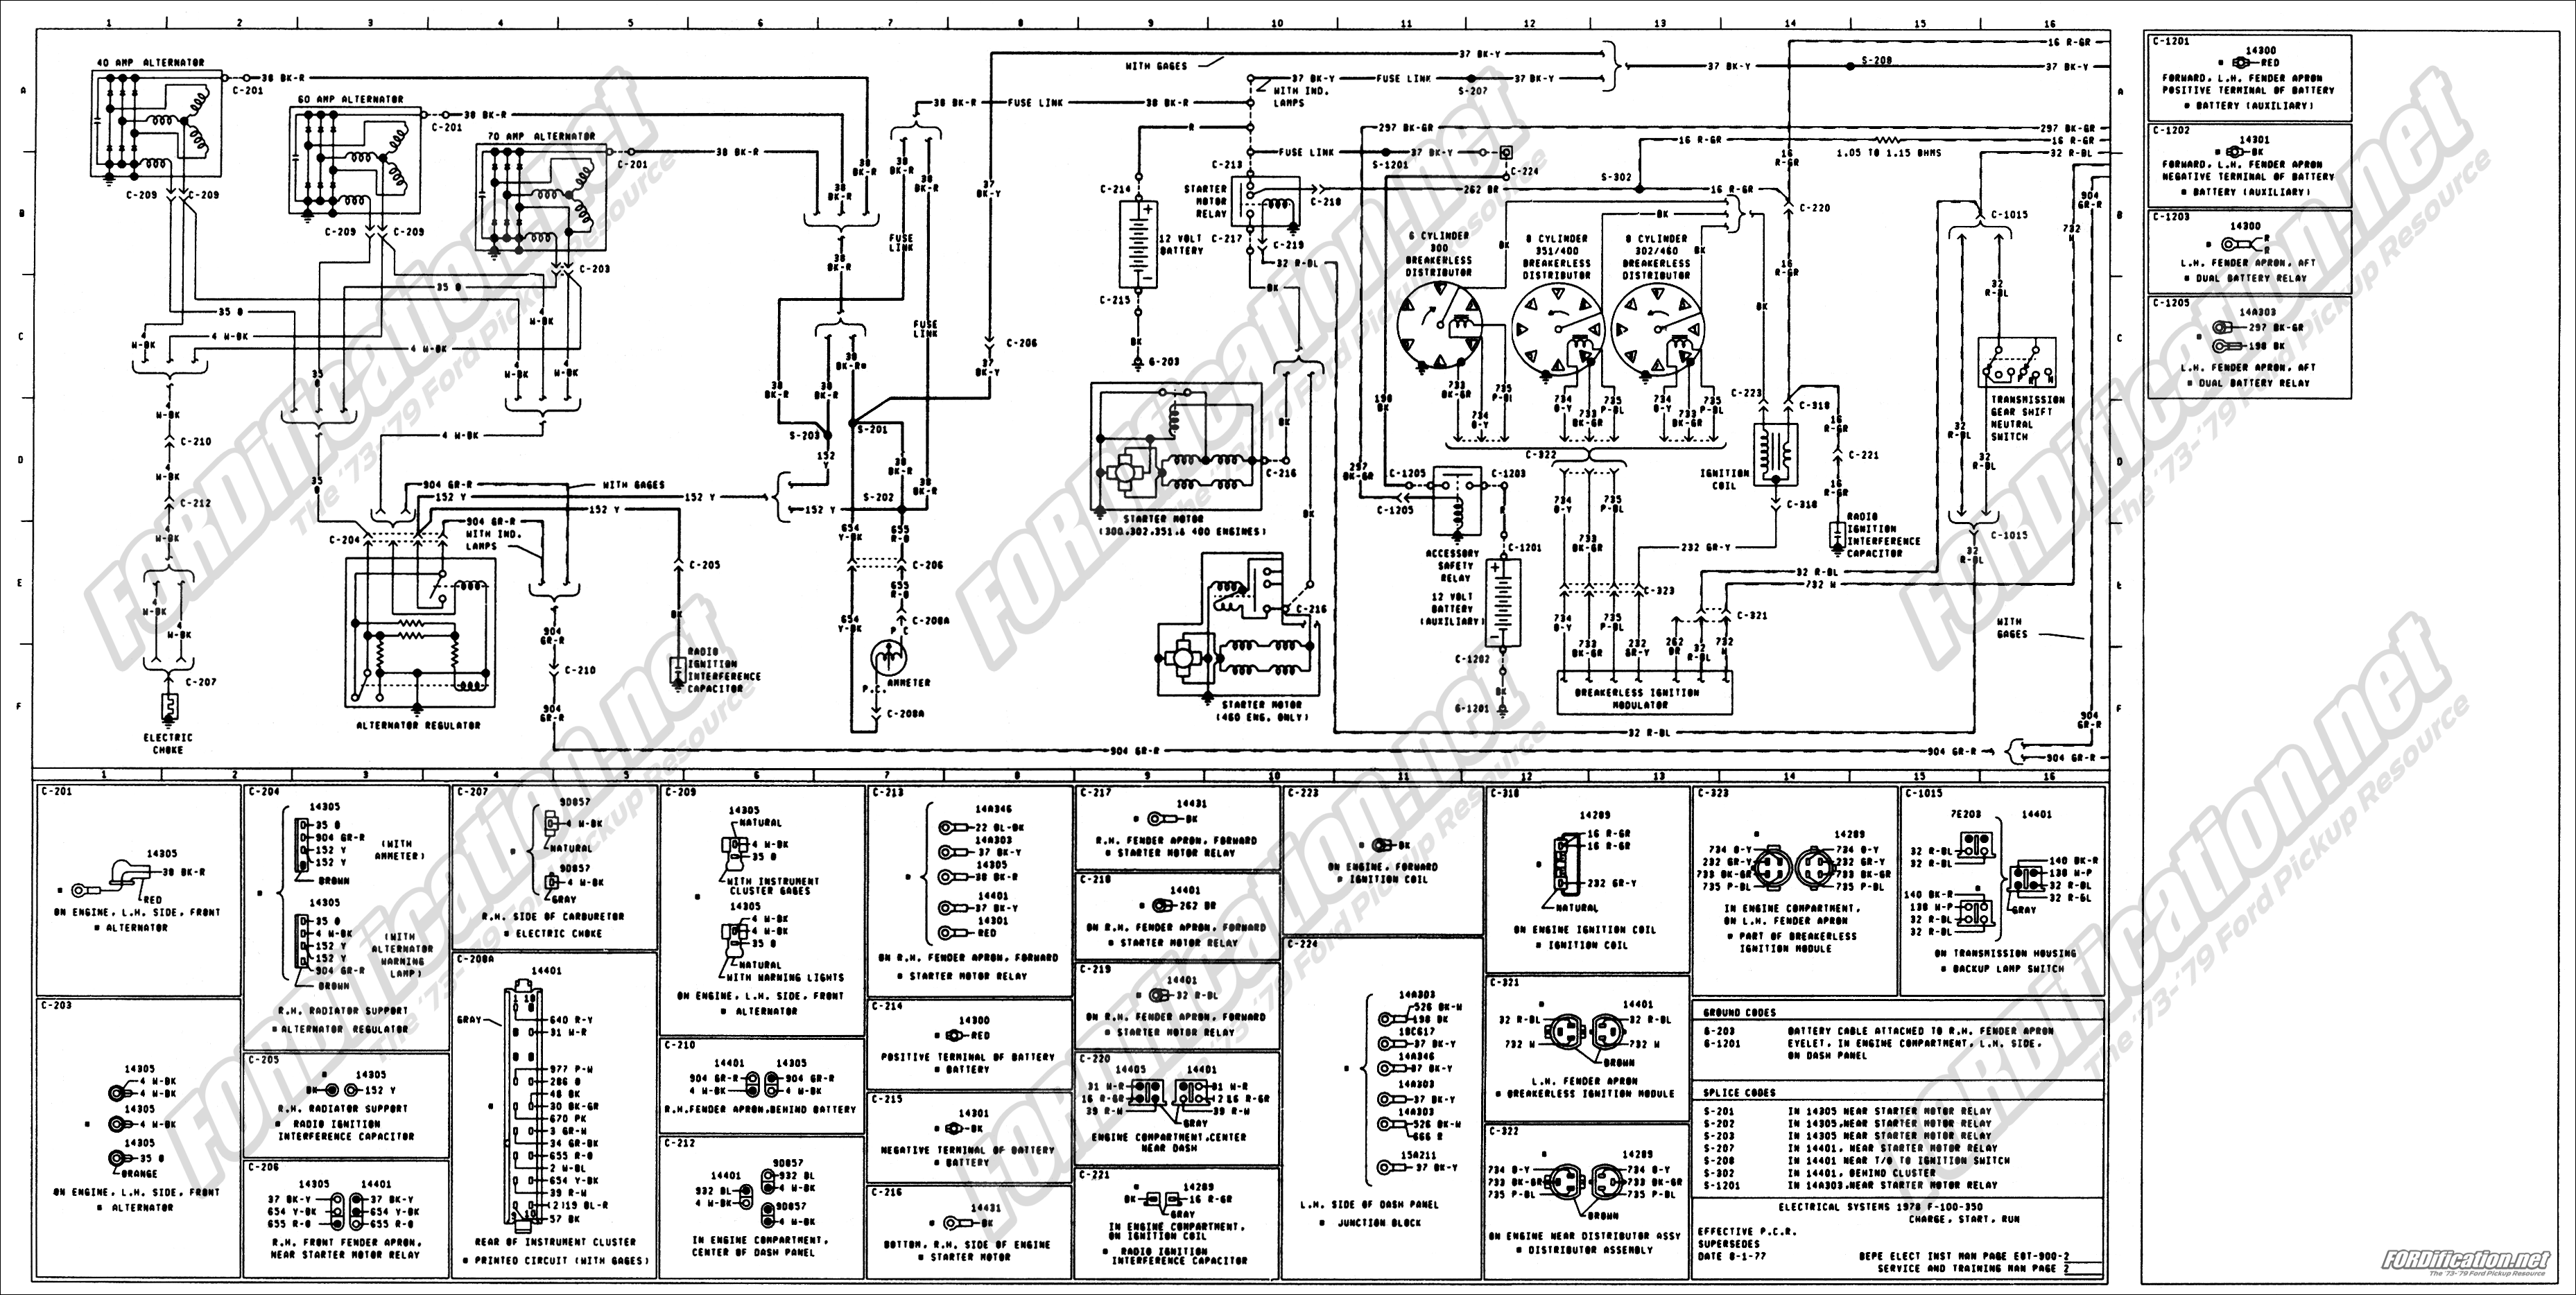 1985 Bronco Wiring Diagram